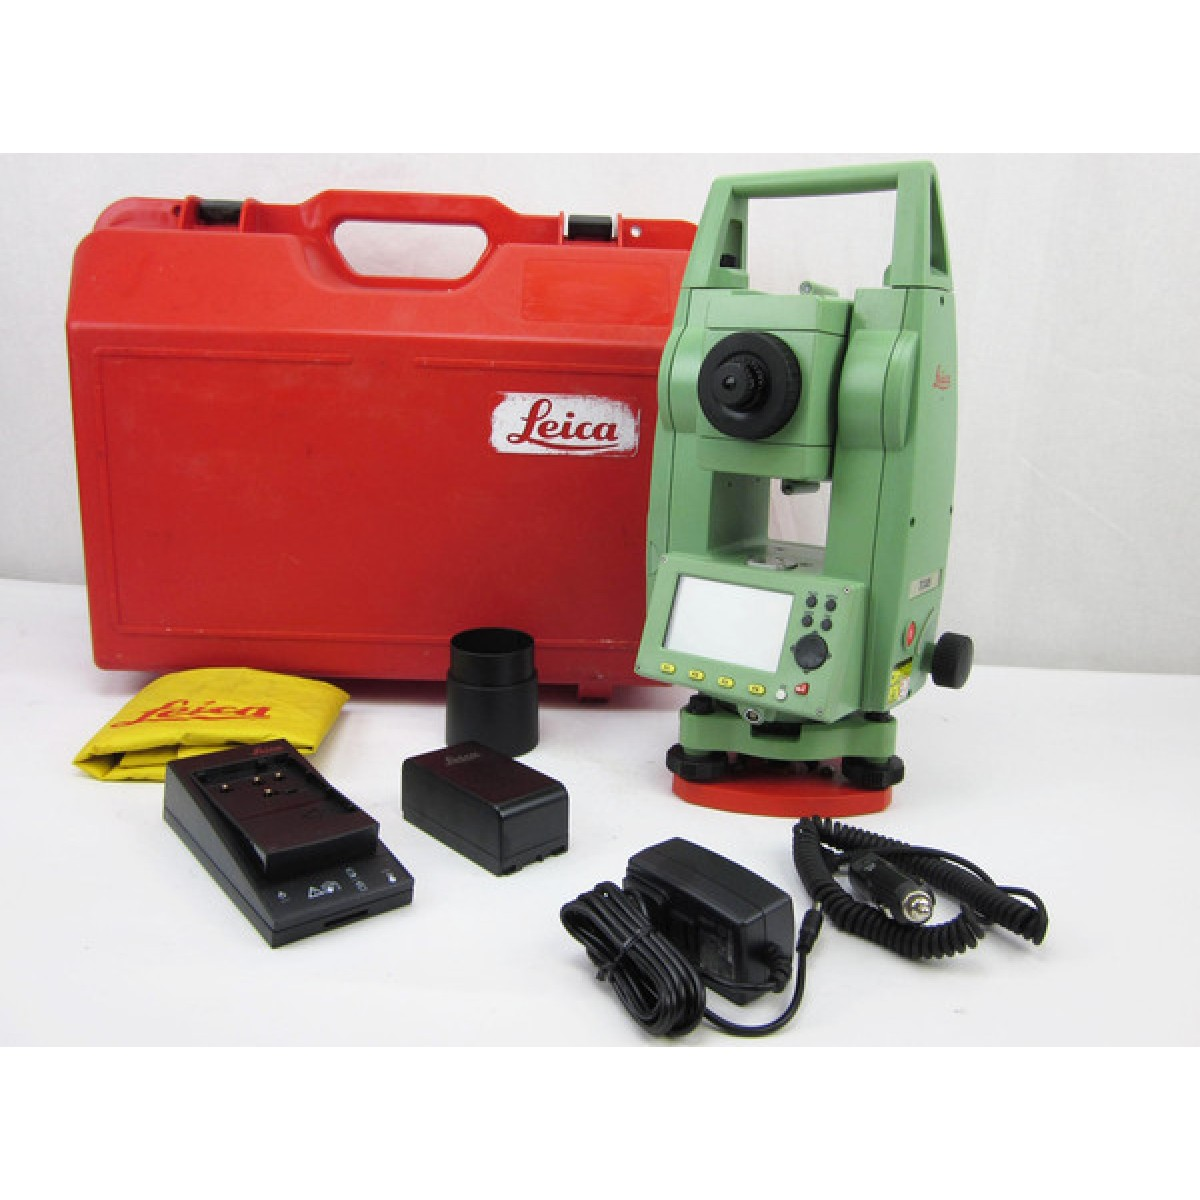 "LEICA TCP1201 1"" COMPLETE ROBOTIC TOTAL STATION FOR SURVEYING"